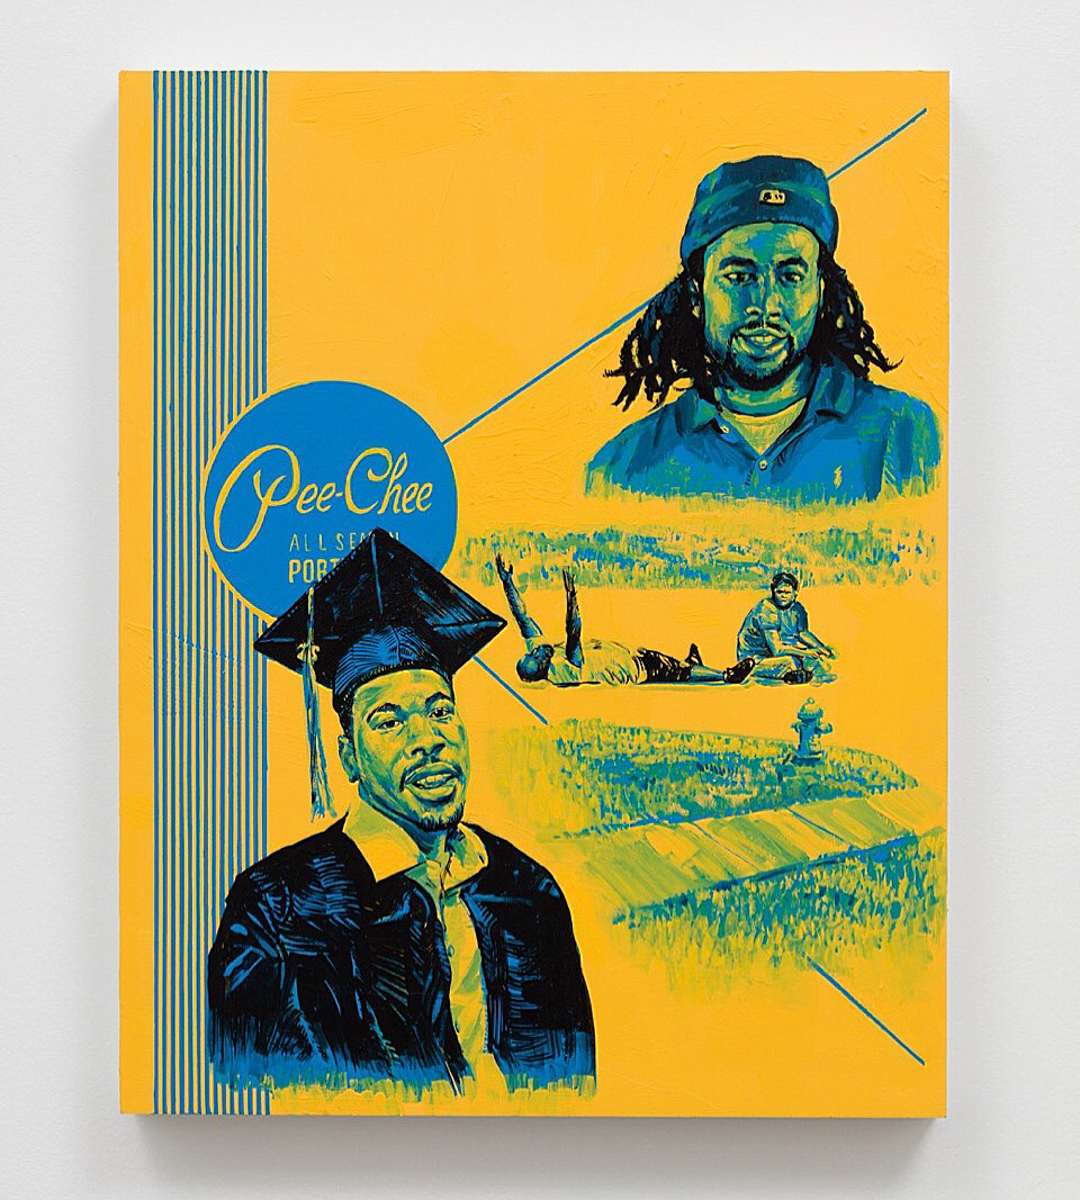 Patrick Martinez, Summer 16 Po-lice Misconduct Misprint, 2016.  Acrylic on panel. 30 × 23 inches. Courtesy of the artist and Charlie James Gallery, Los Angeles.  Photo by Michael Underwood.